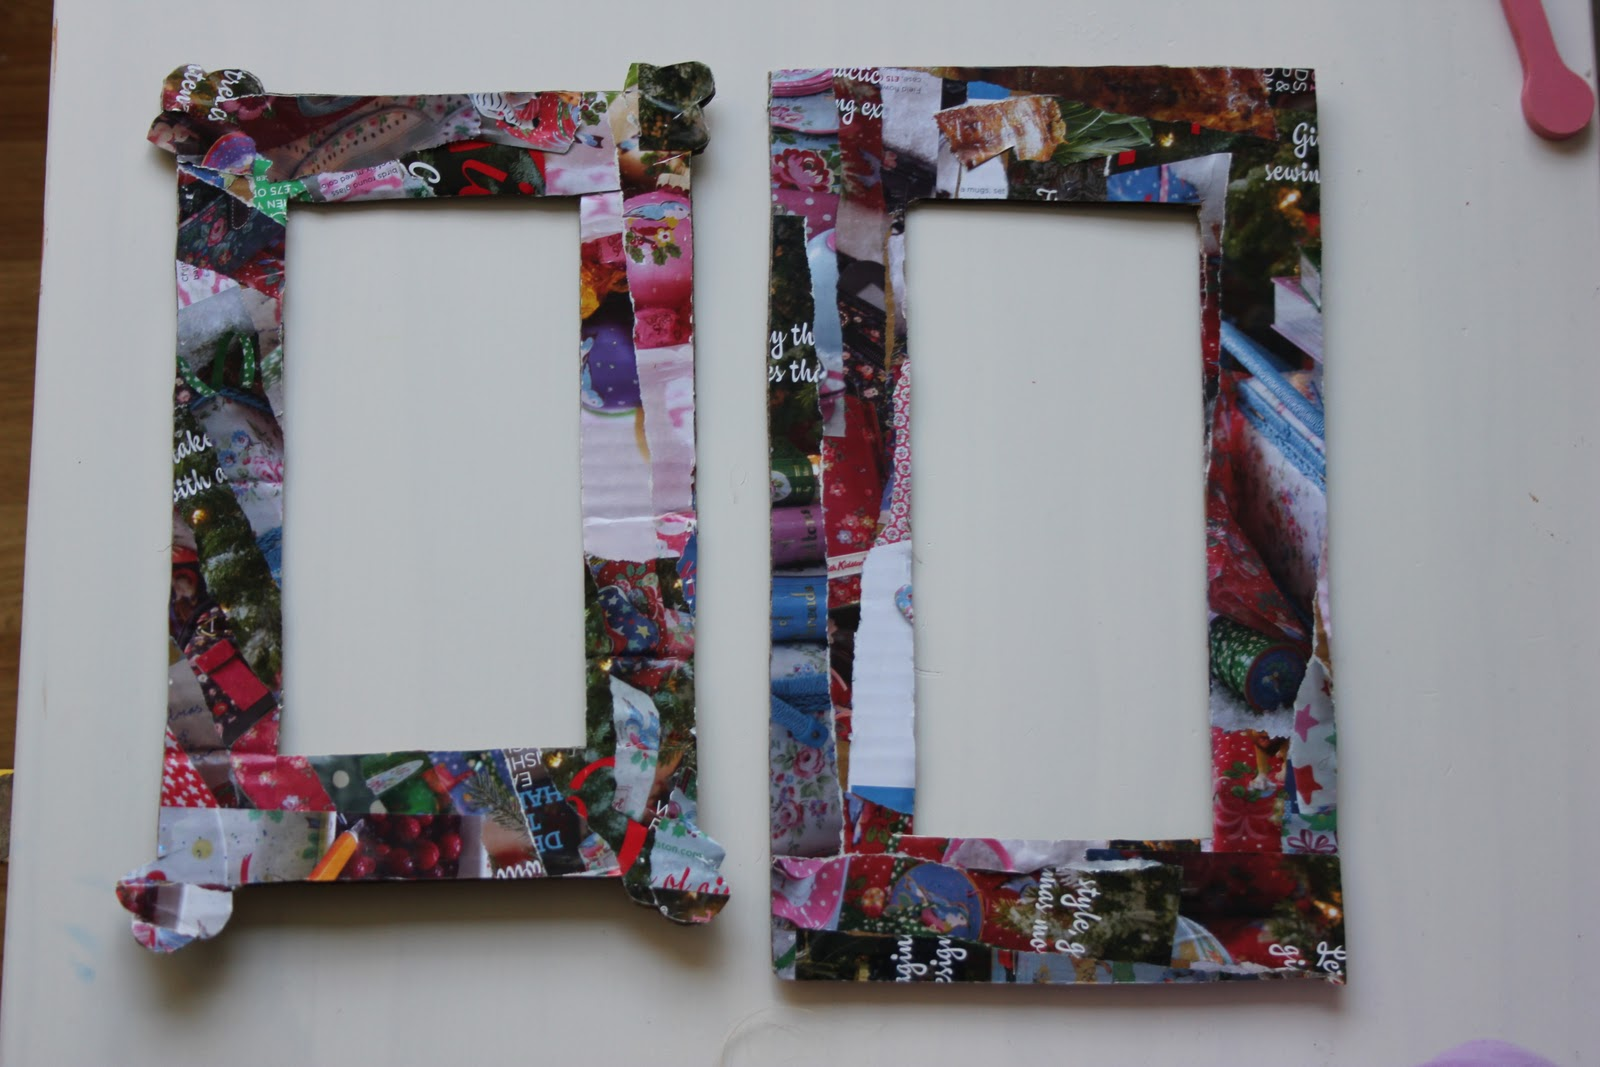 Magazine Collage Picture Frames - The Imagination Tree